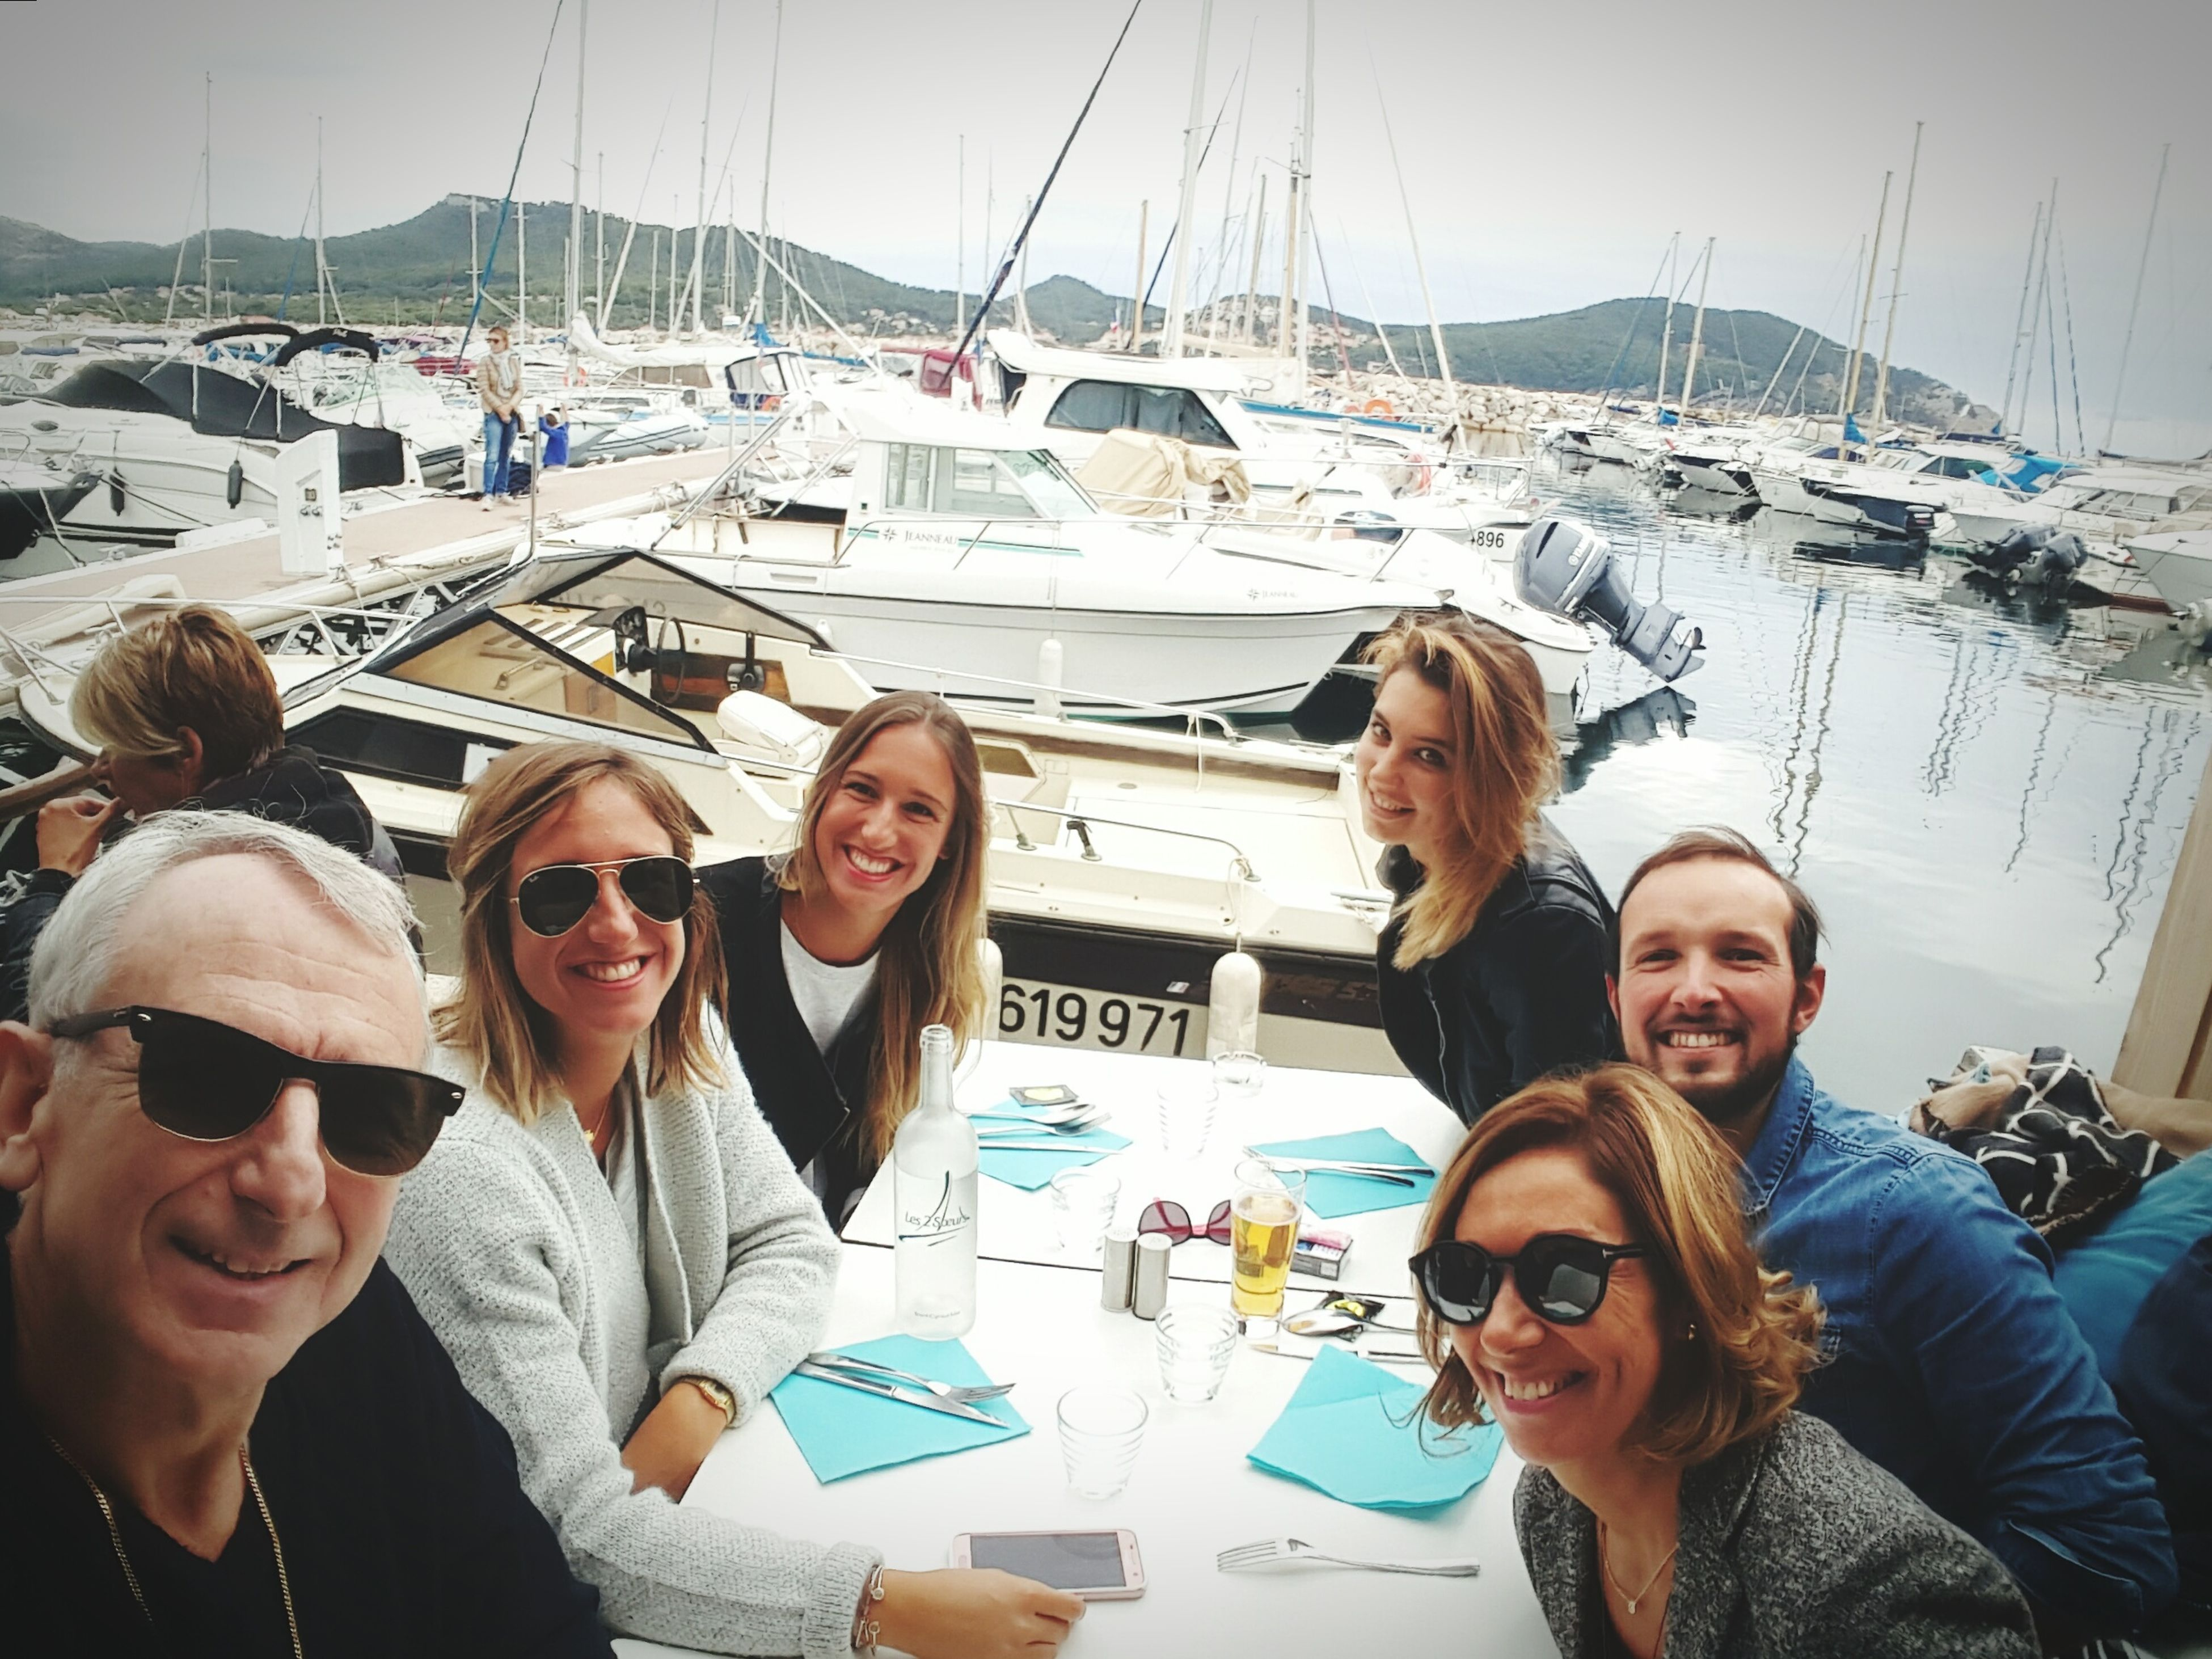 togetherness, person, casual clothing, leisure activity, bonding, nautical vessel, lifestyles, happiness, clear sky, love, young adult, transportation, young women, smiling, portrait, toothy smile, friendship, mode of transport, sunglasses, front view, water, looking at camera, day, sky, vacations, sea, looking